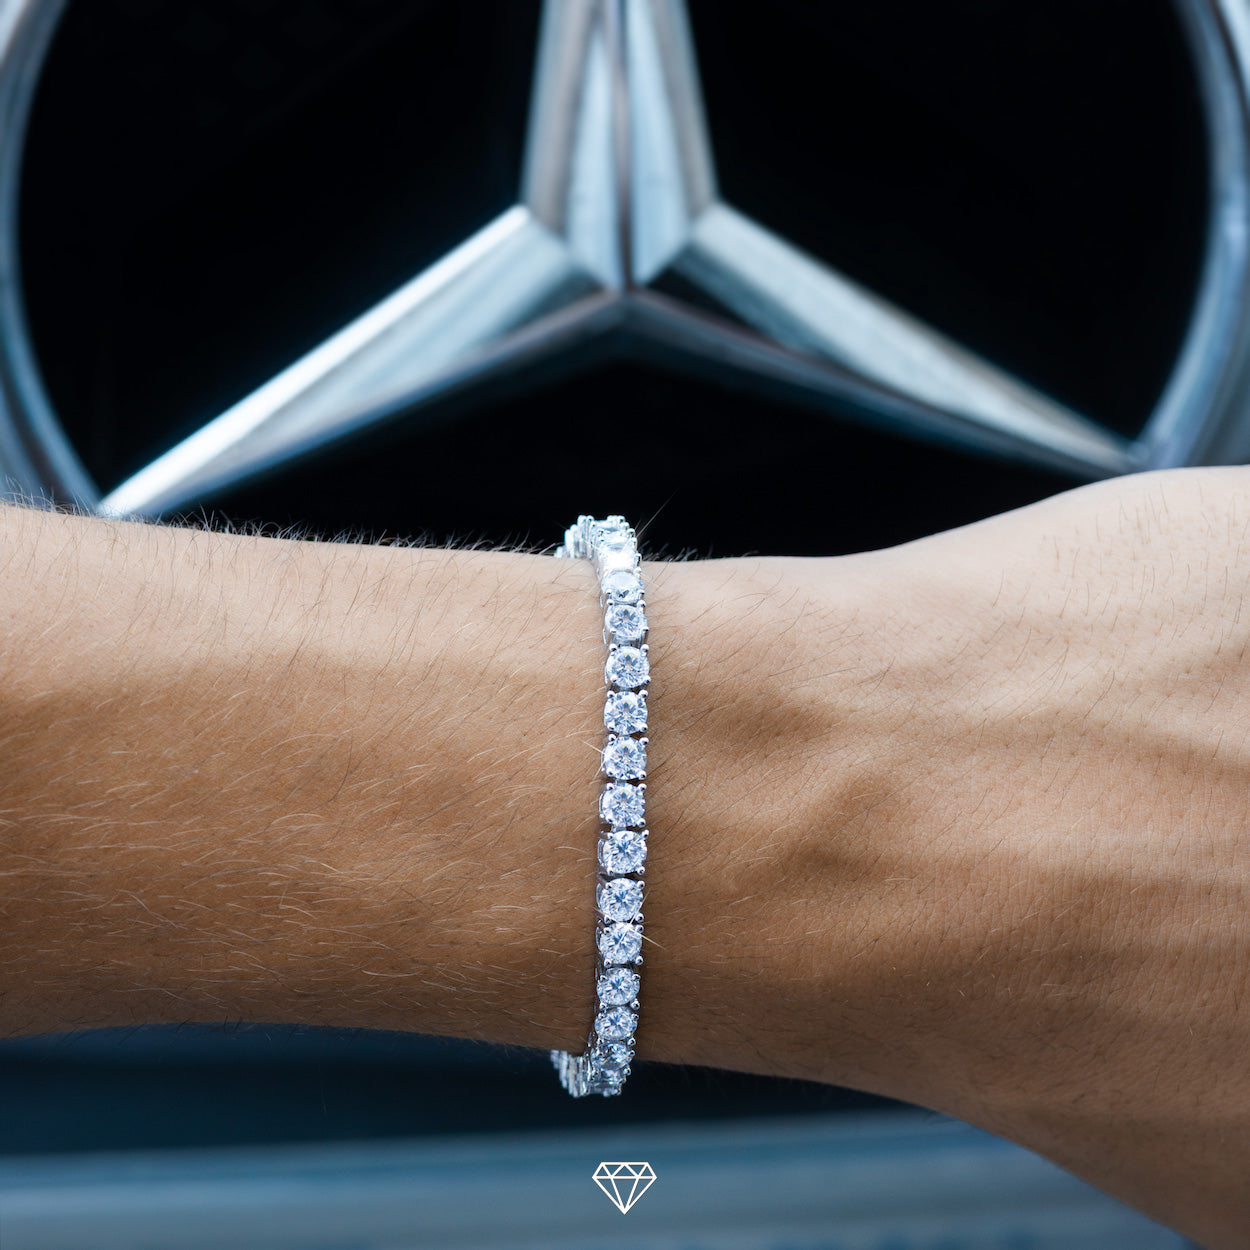 White Gold hiphop iced tennis bracelet